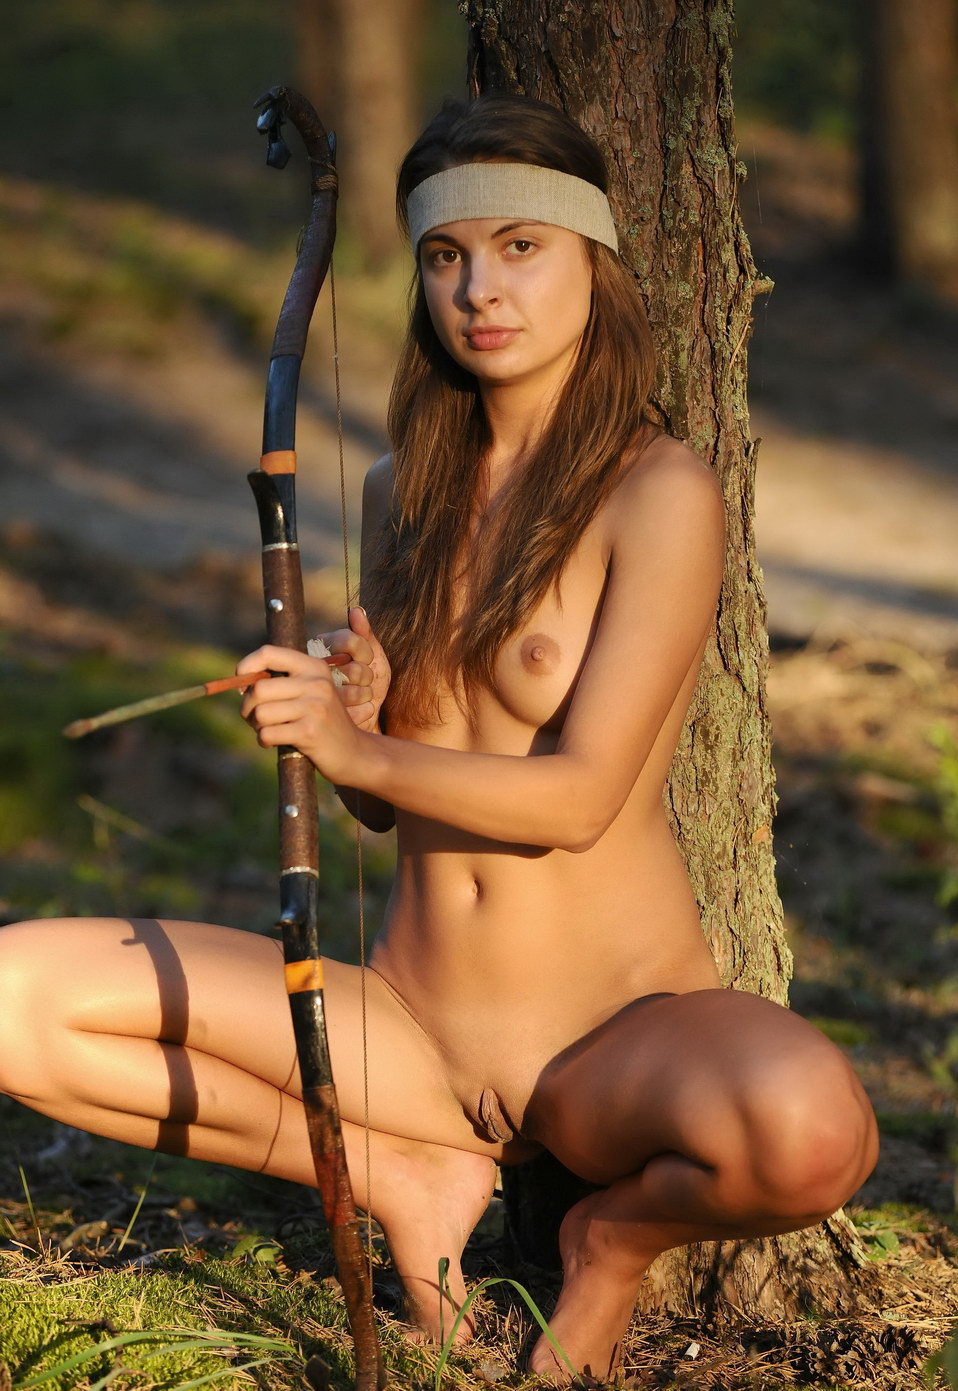 Female archers naked sex clip